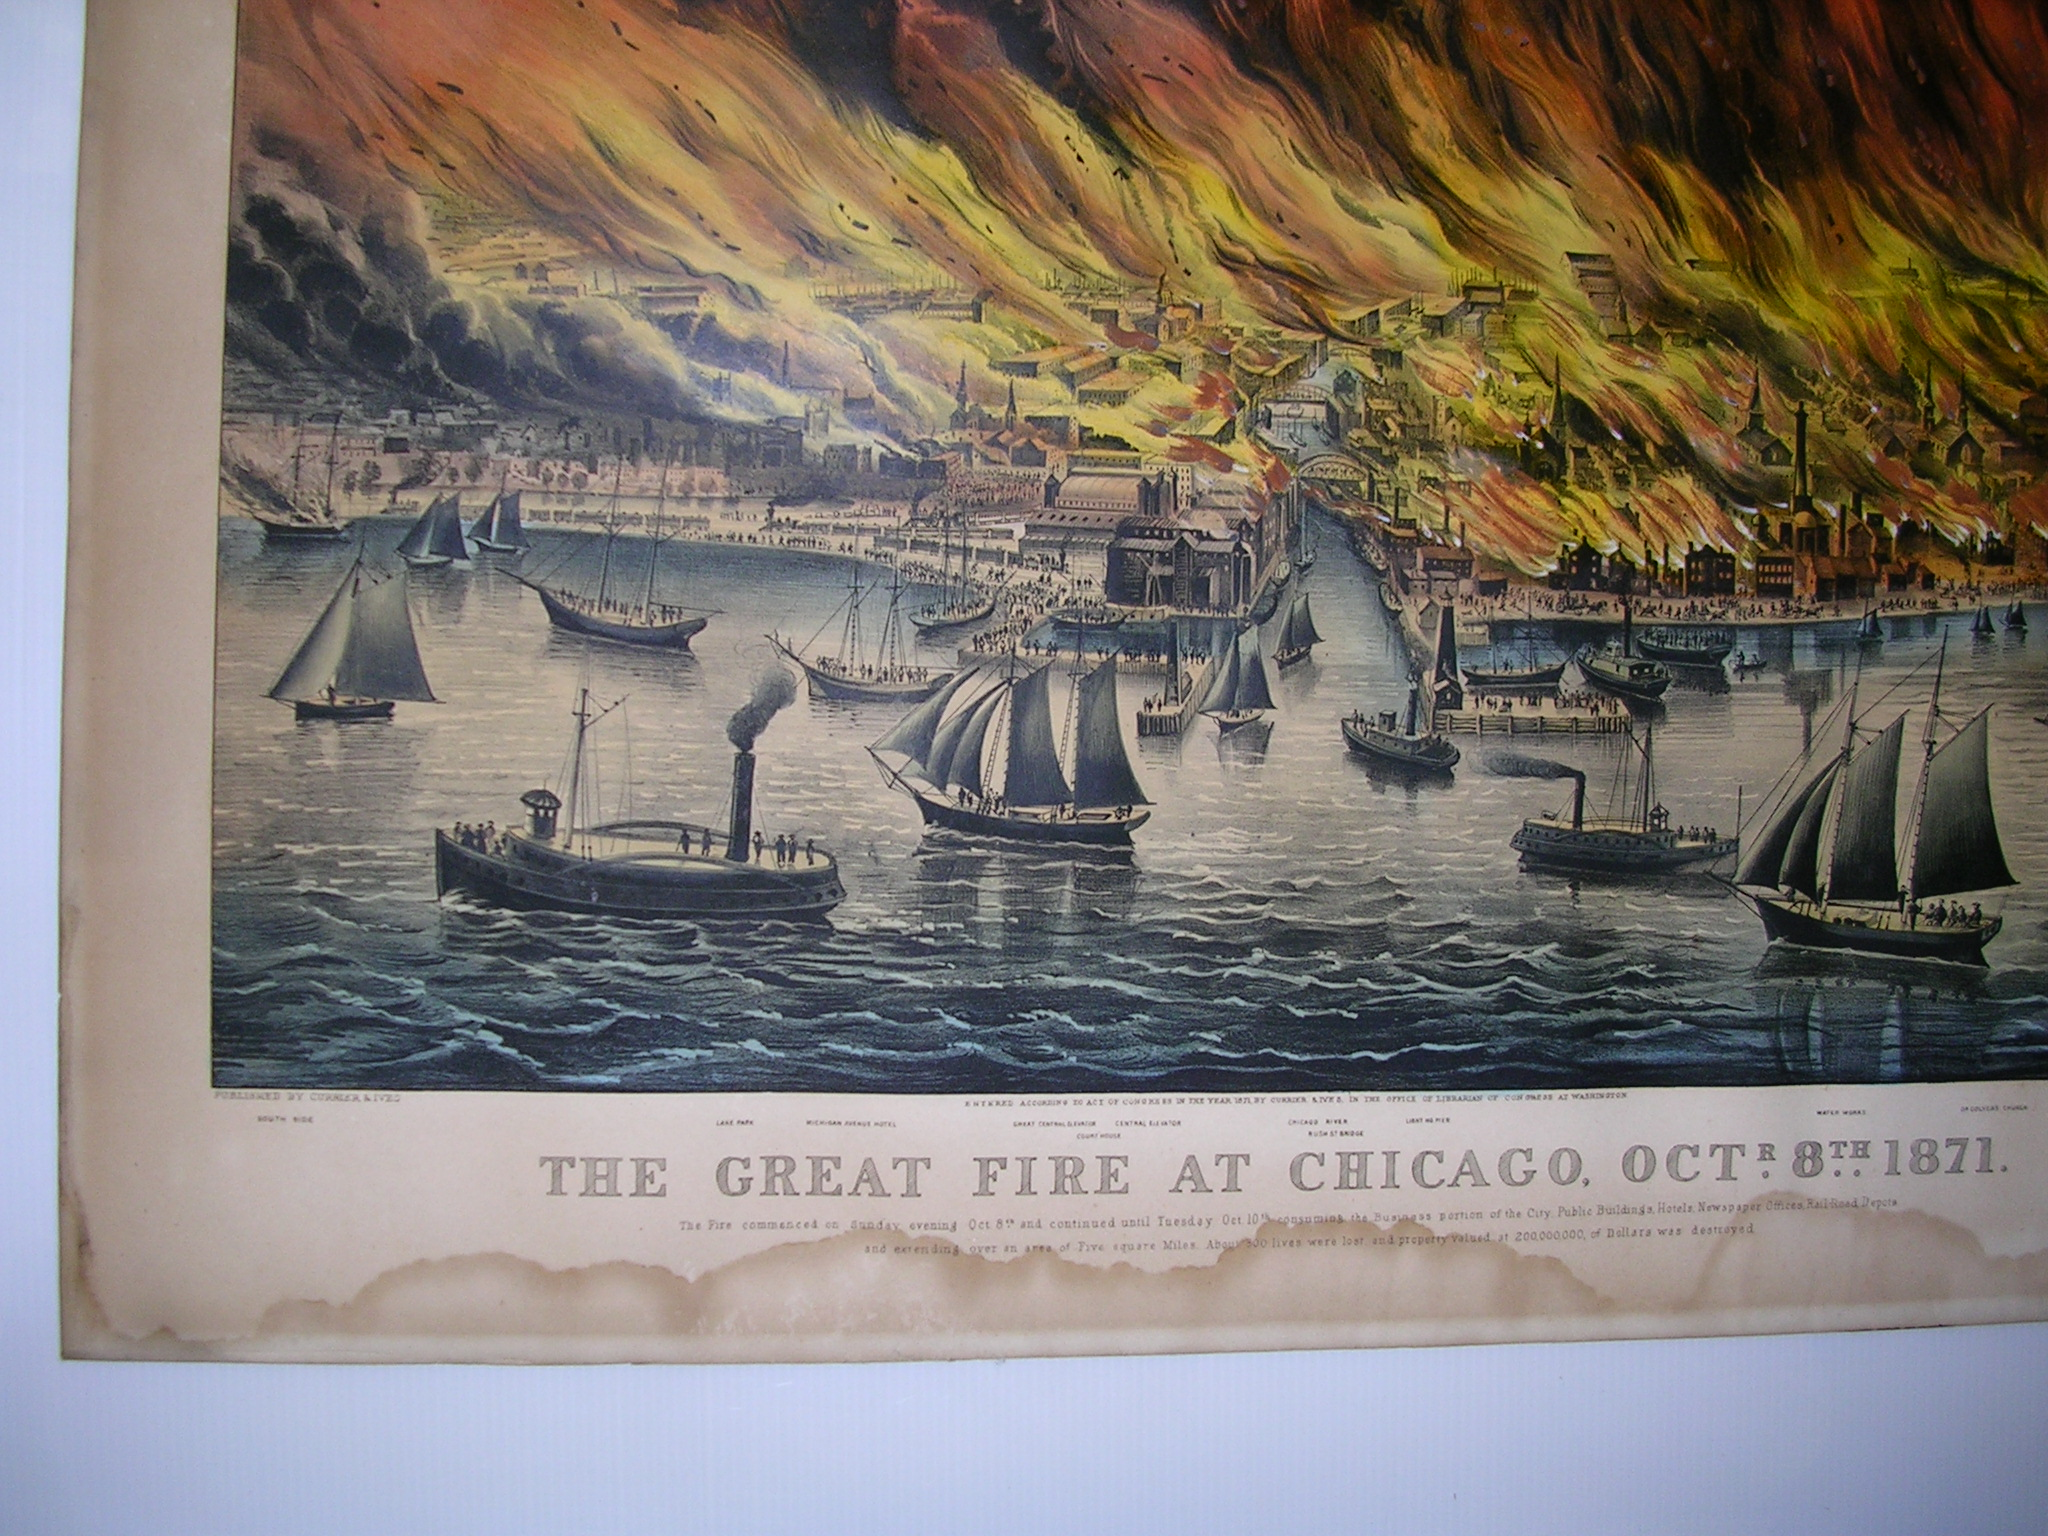 Currier & Ives, publishers (American, 1857-1907)      THE GREAT FIRE AT CHICAGO, OCT.R 8TH 1871.